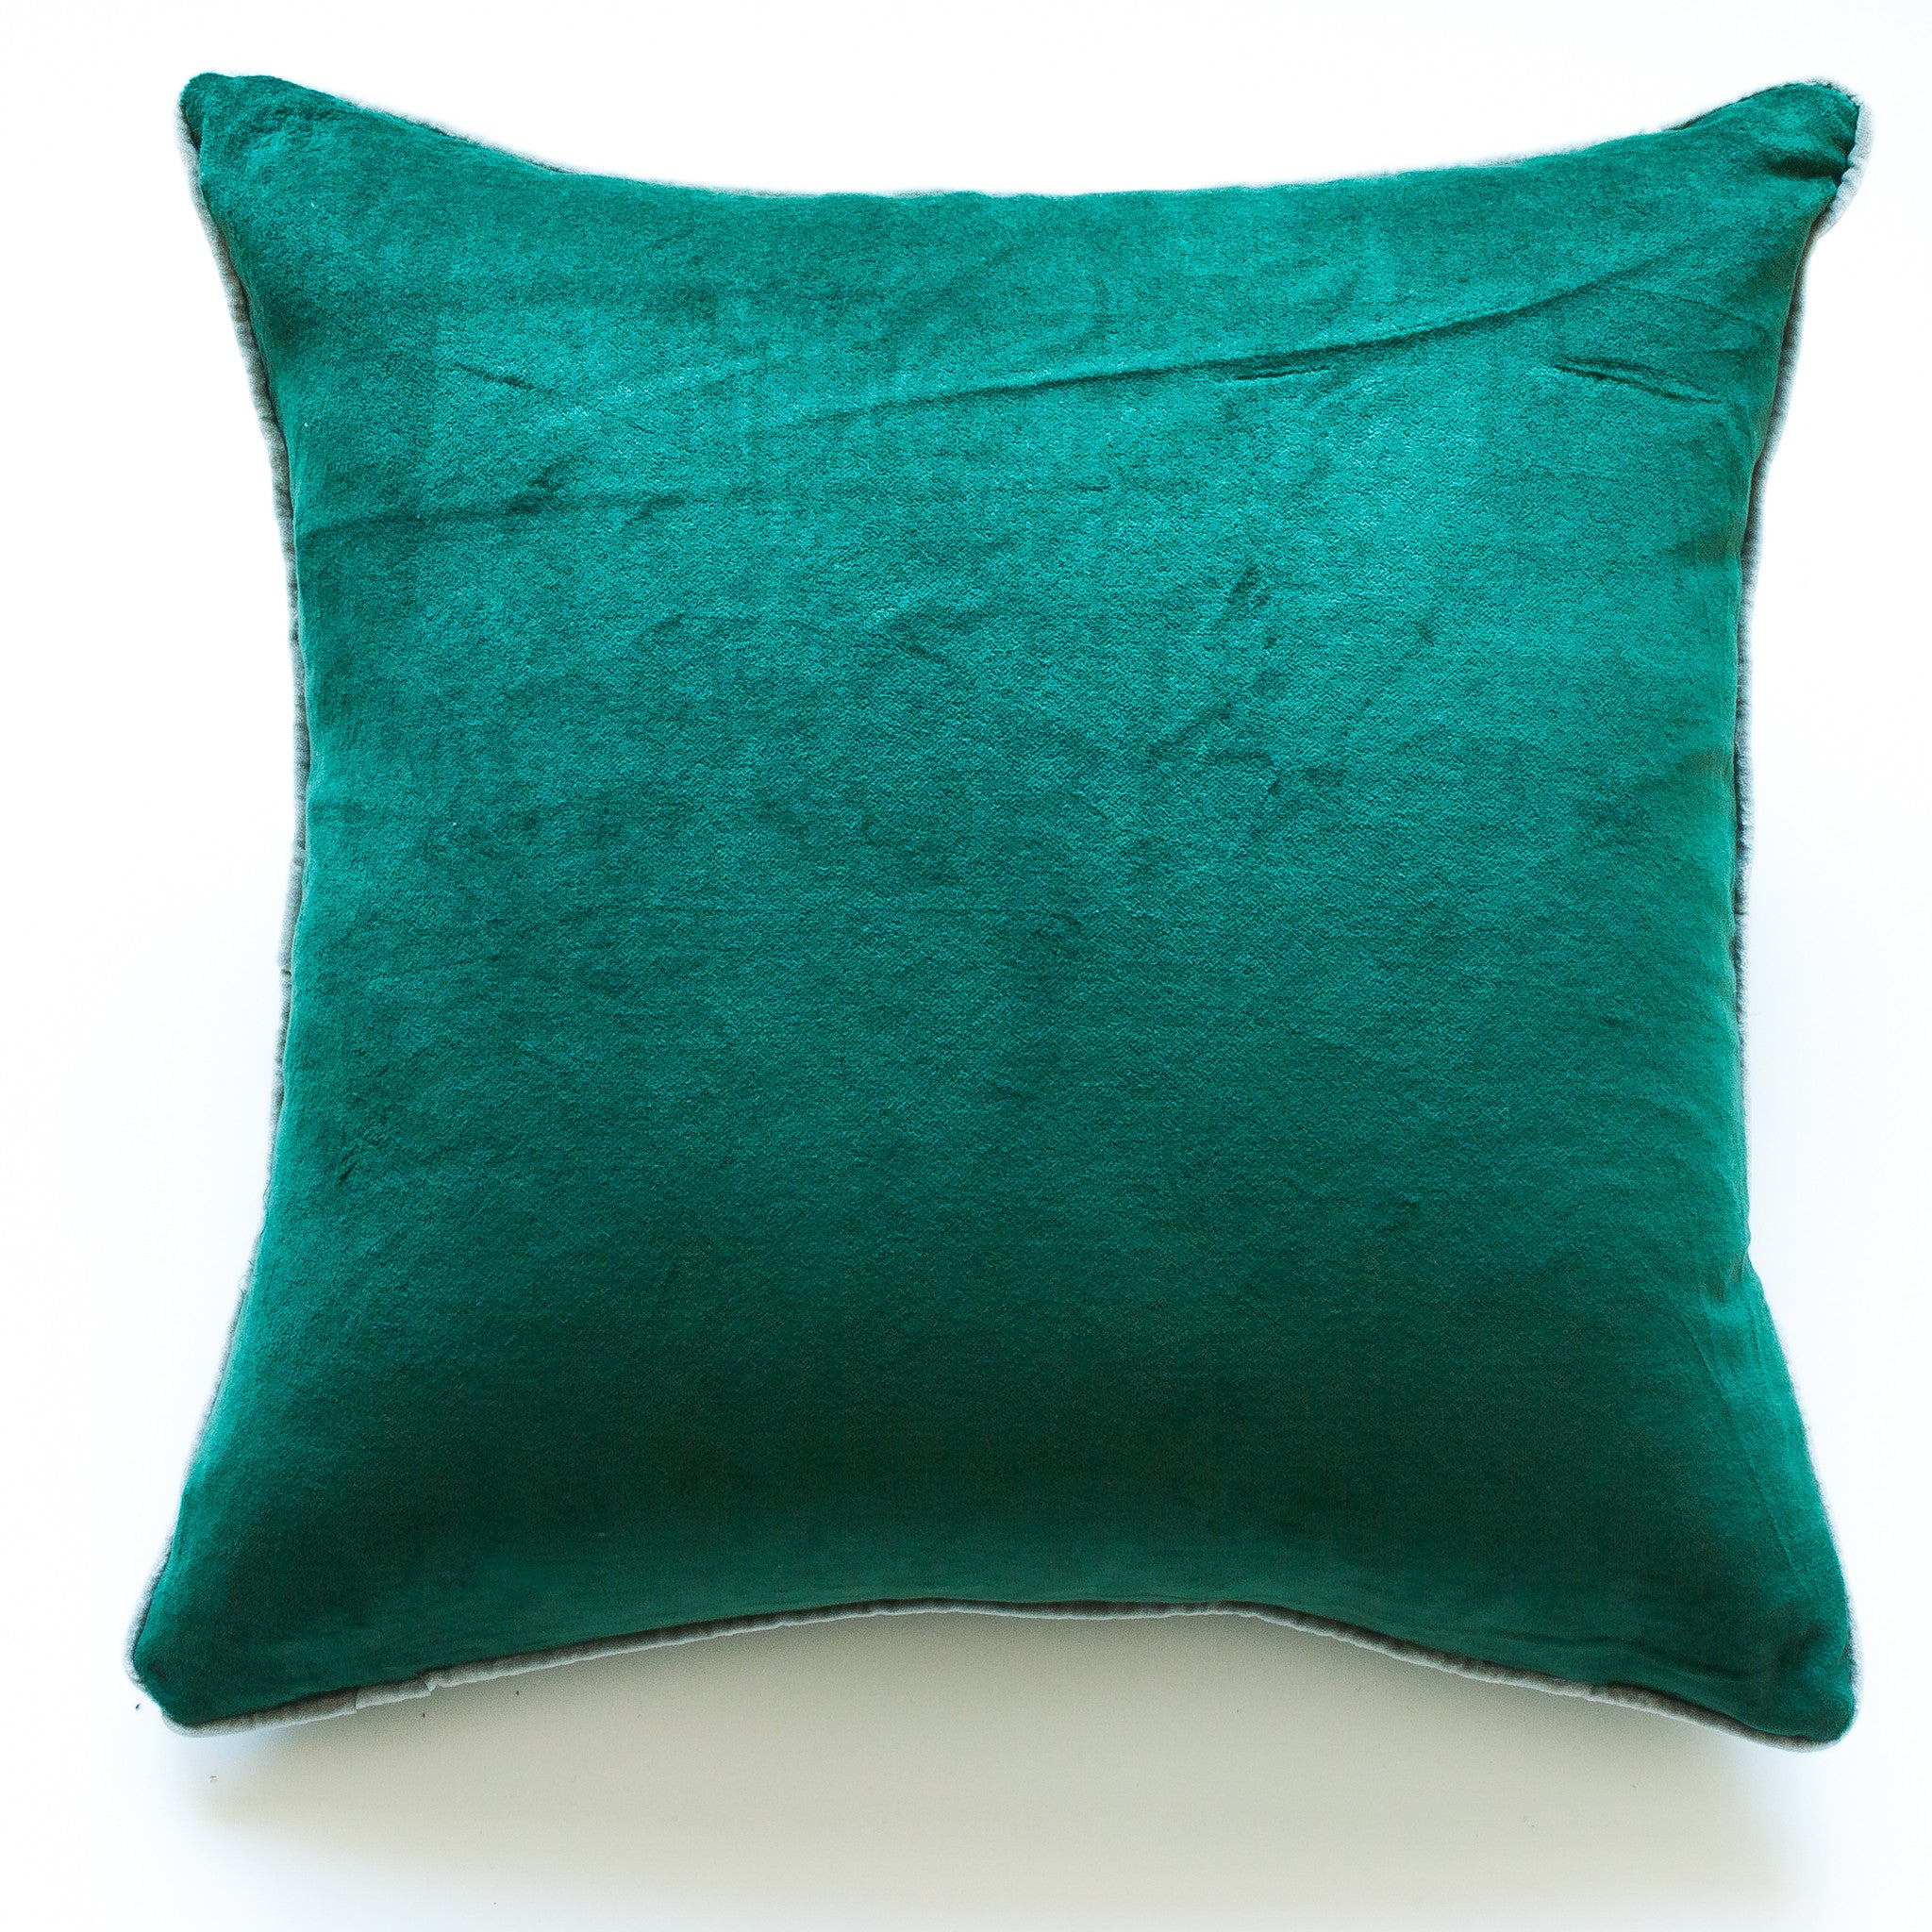 pin throw loloi blakeney favorite cover rugs teal pillow pillows accent justina cotton